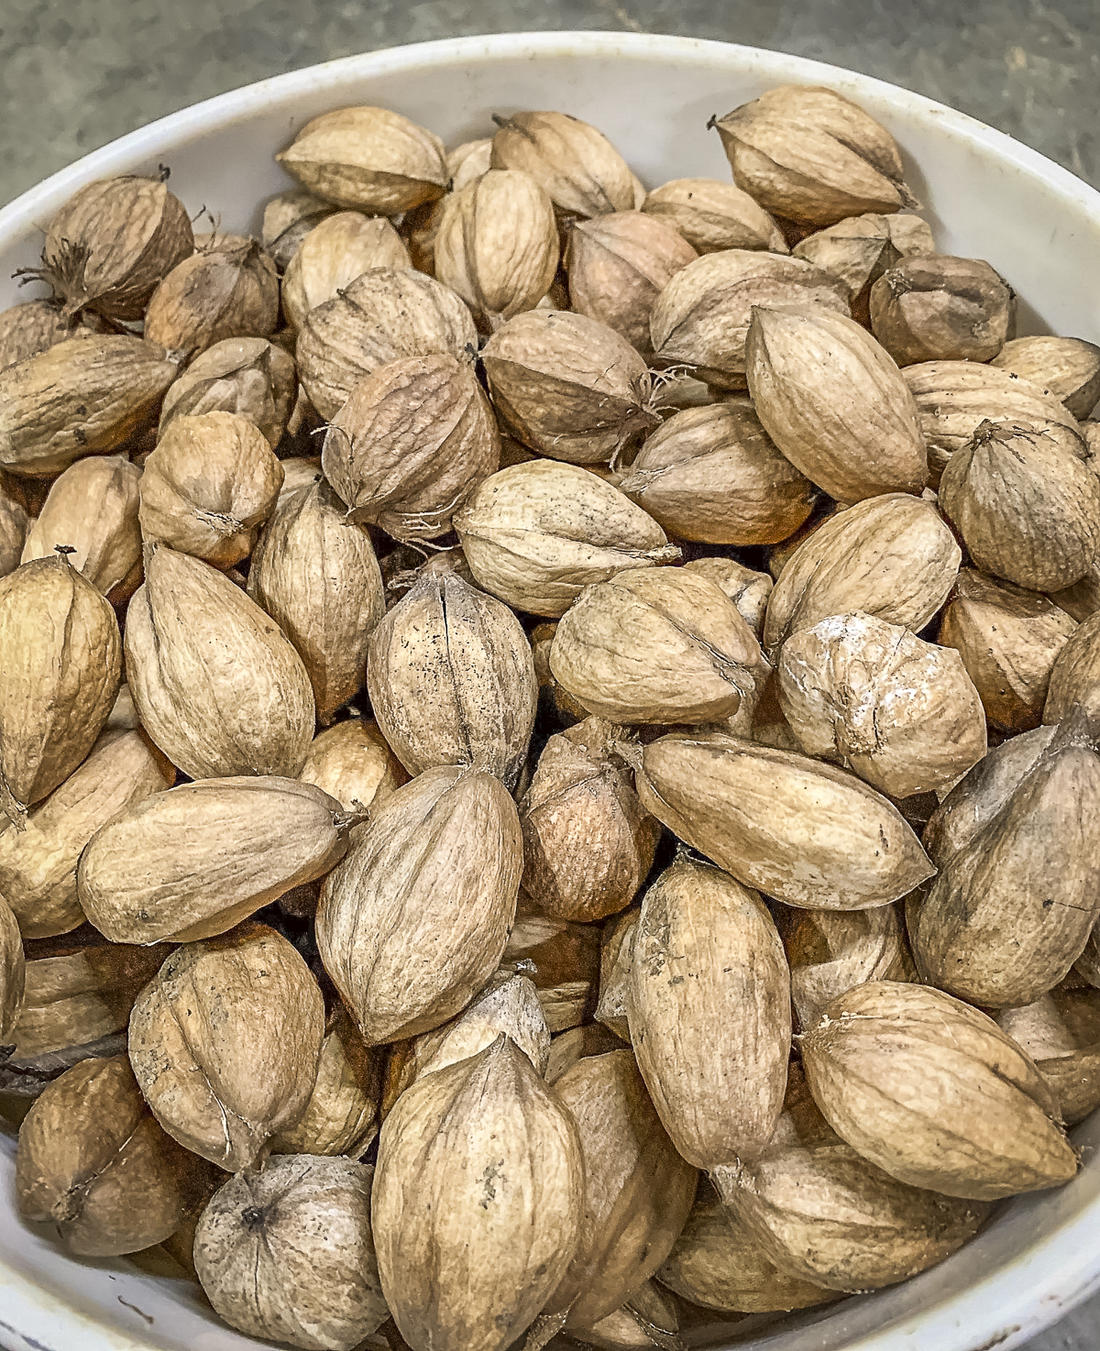 Store the hulled nuts in a 5-gallon bucket or other lidded plastic container.